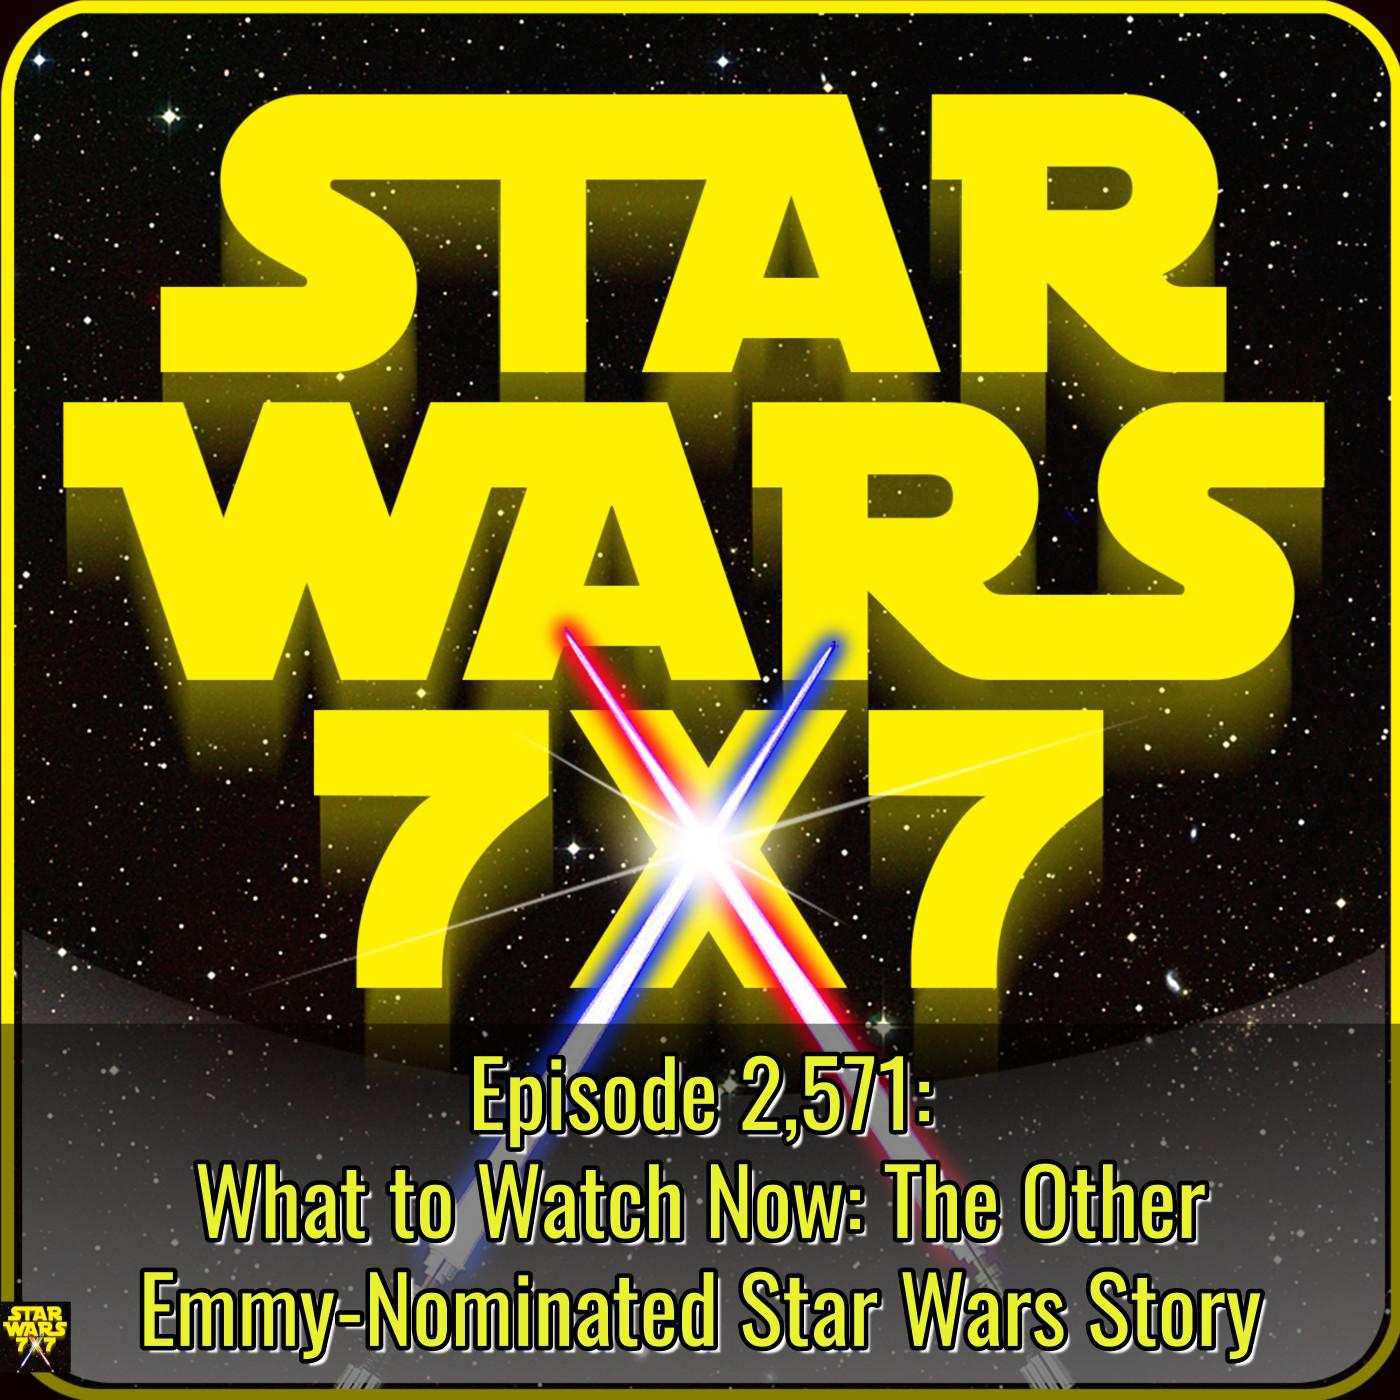 2,571. What to Watch Now: The Other Emmy-Nominated Star Wars Story